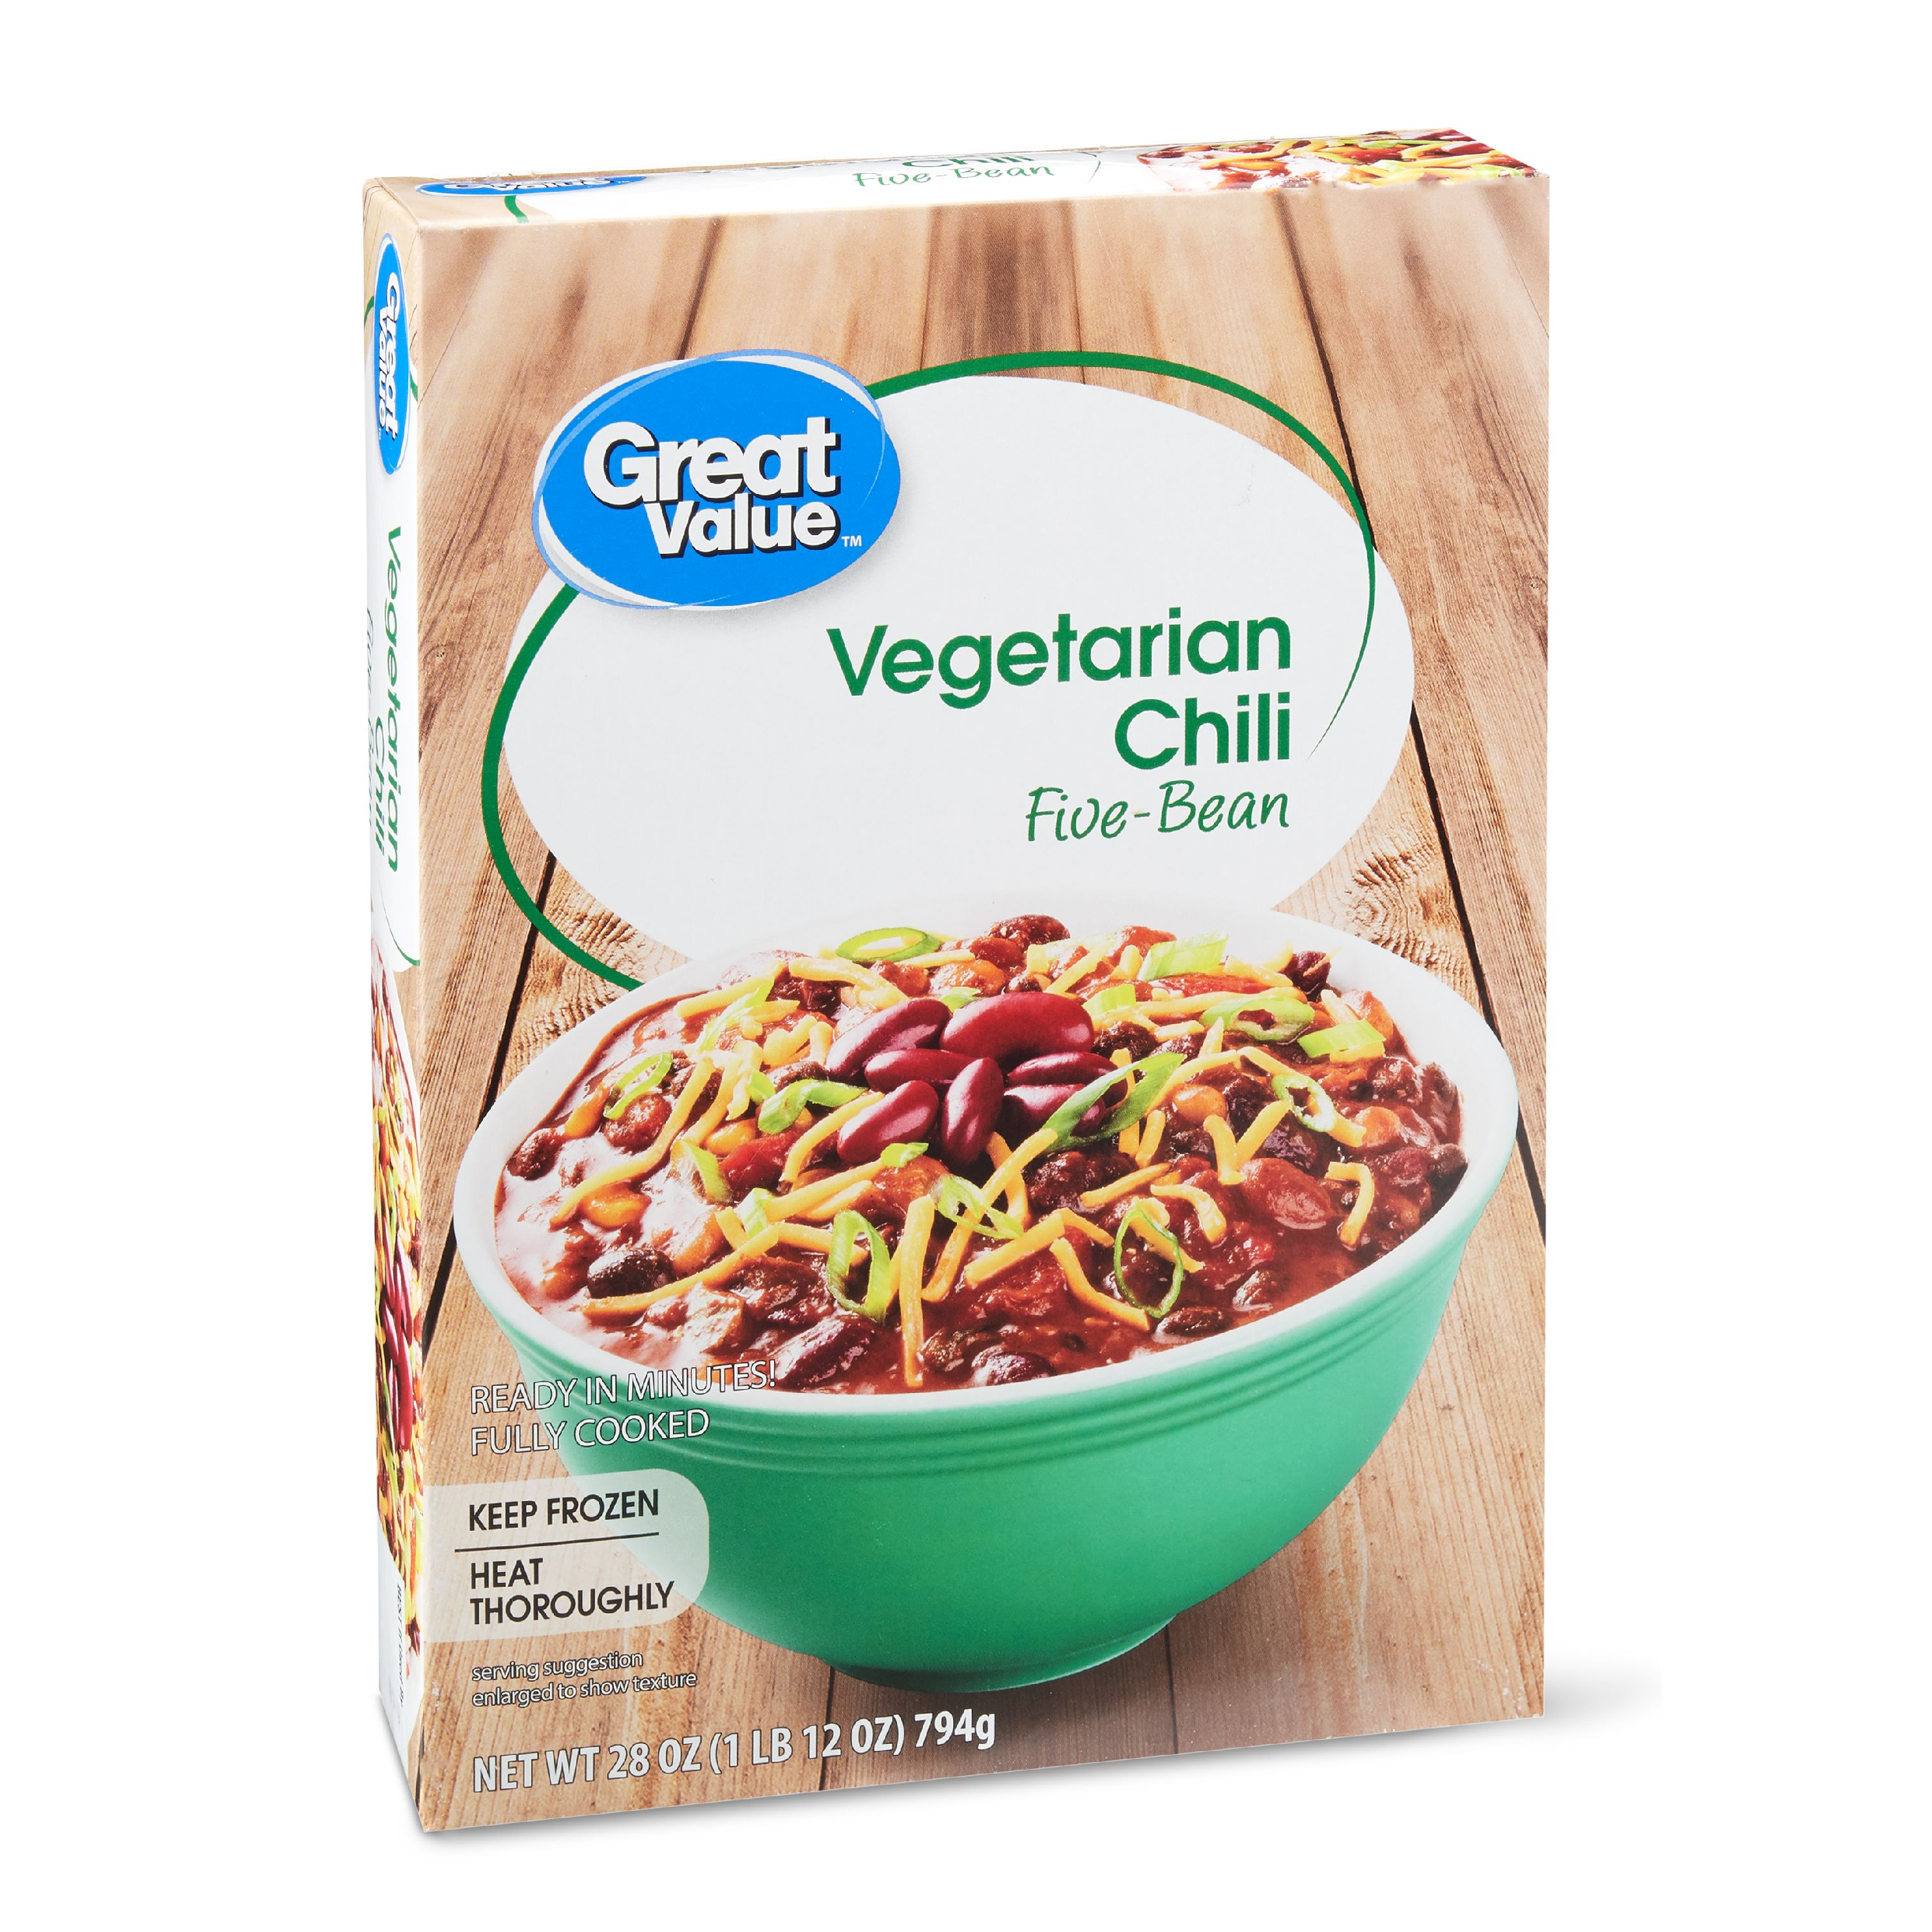 Great Value Frozen Five-Bean Vegetarian Chili, 28 oz